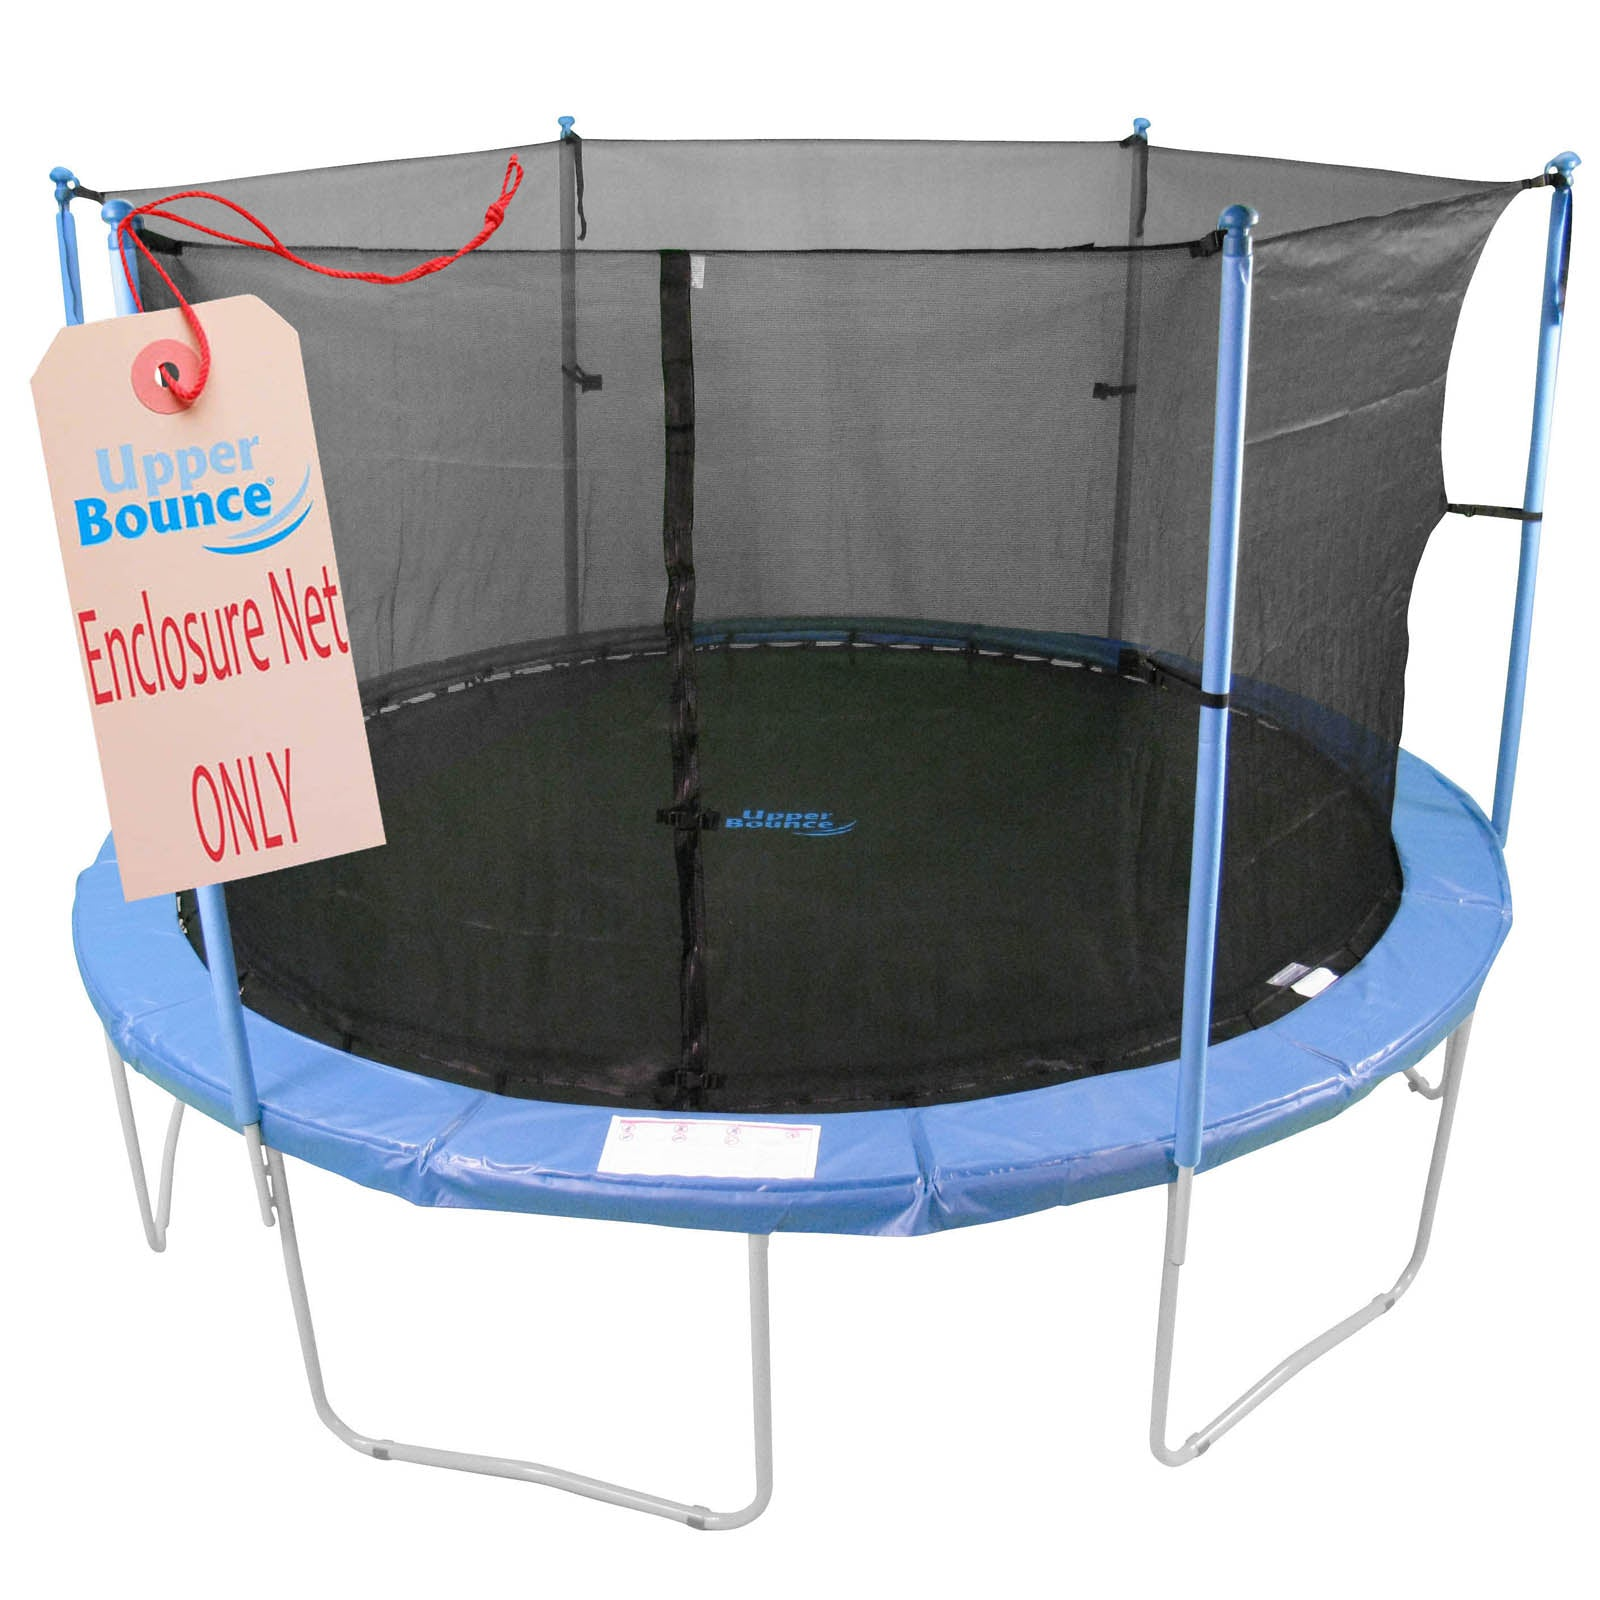 Trampoline Replacement Enclosure Net, Fits For 10 FT. Round Frames, With Adjustable Straps, Using 4 Poles or 2 Arches - onlinesportsmall